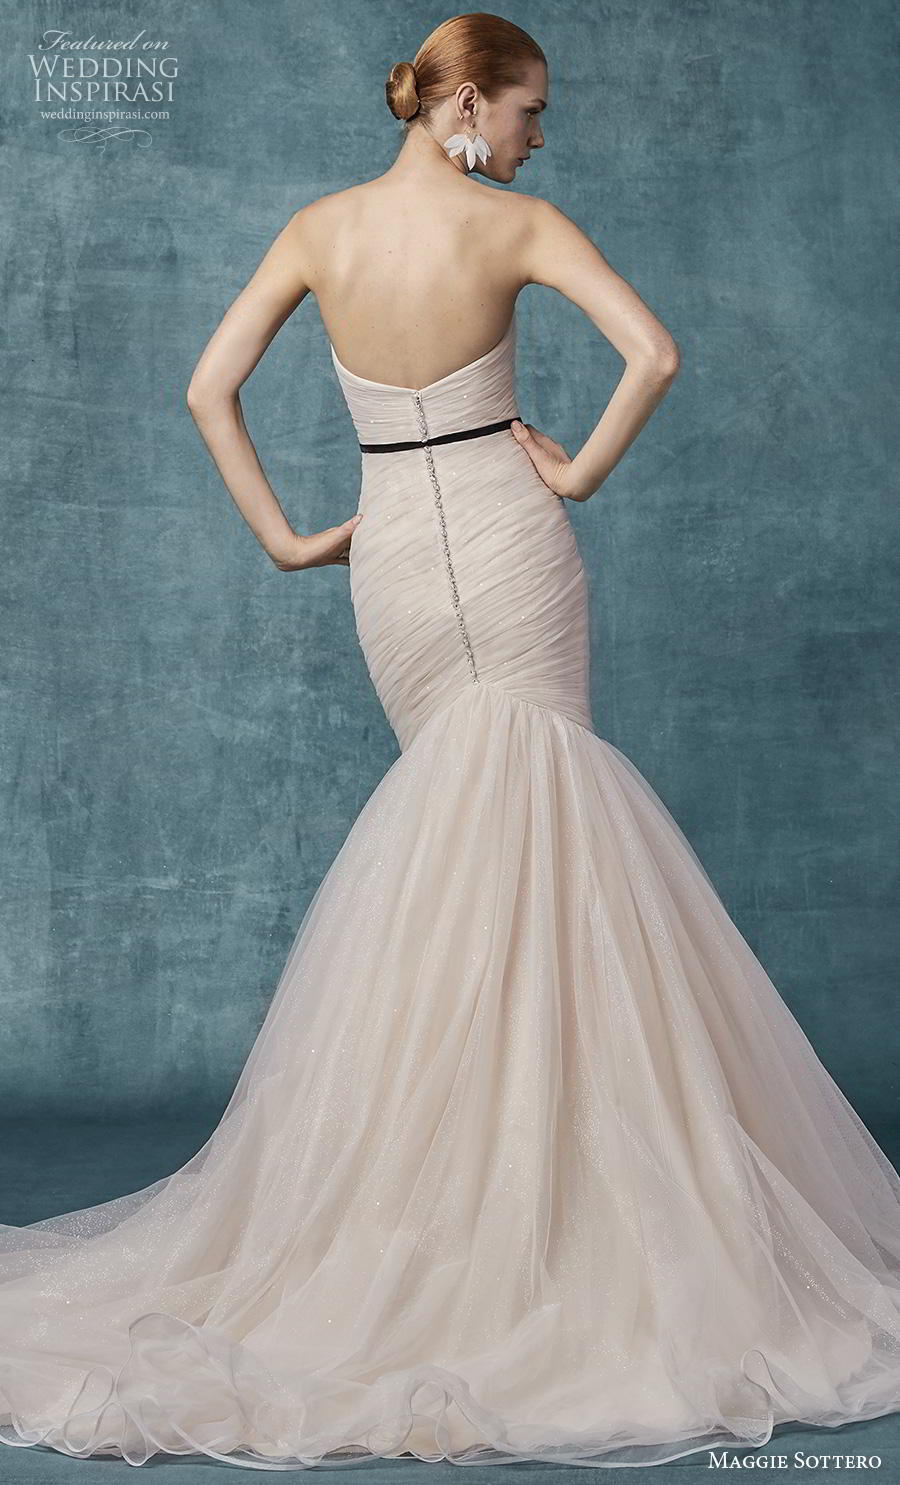 maggie sottero spring 2019 bridal strapless sweetheart neckline wrap over ruched bodice simple blush mermaid wedding dress mid back chapel train (10) bv